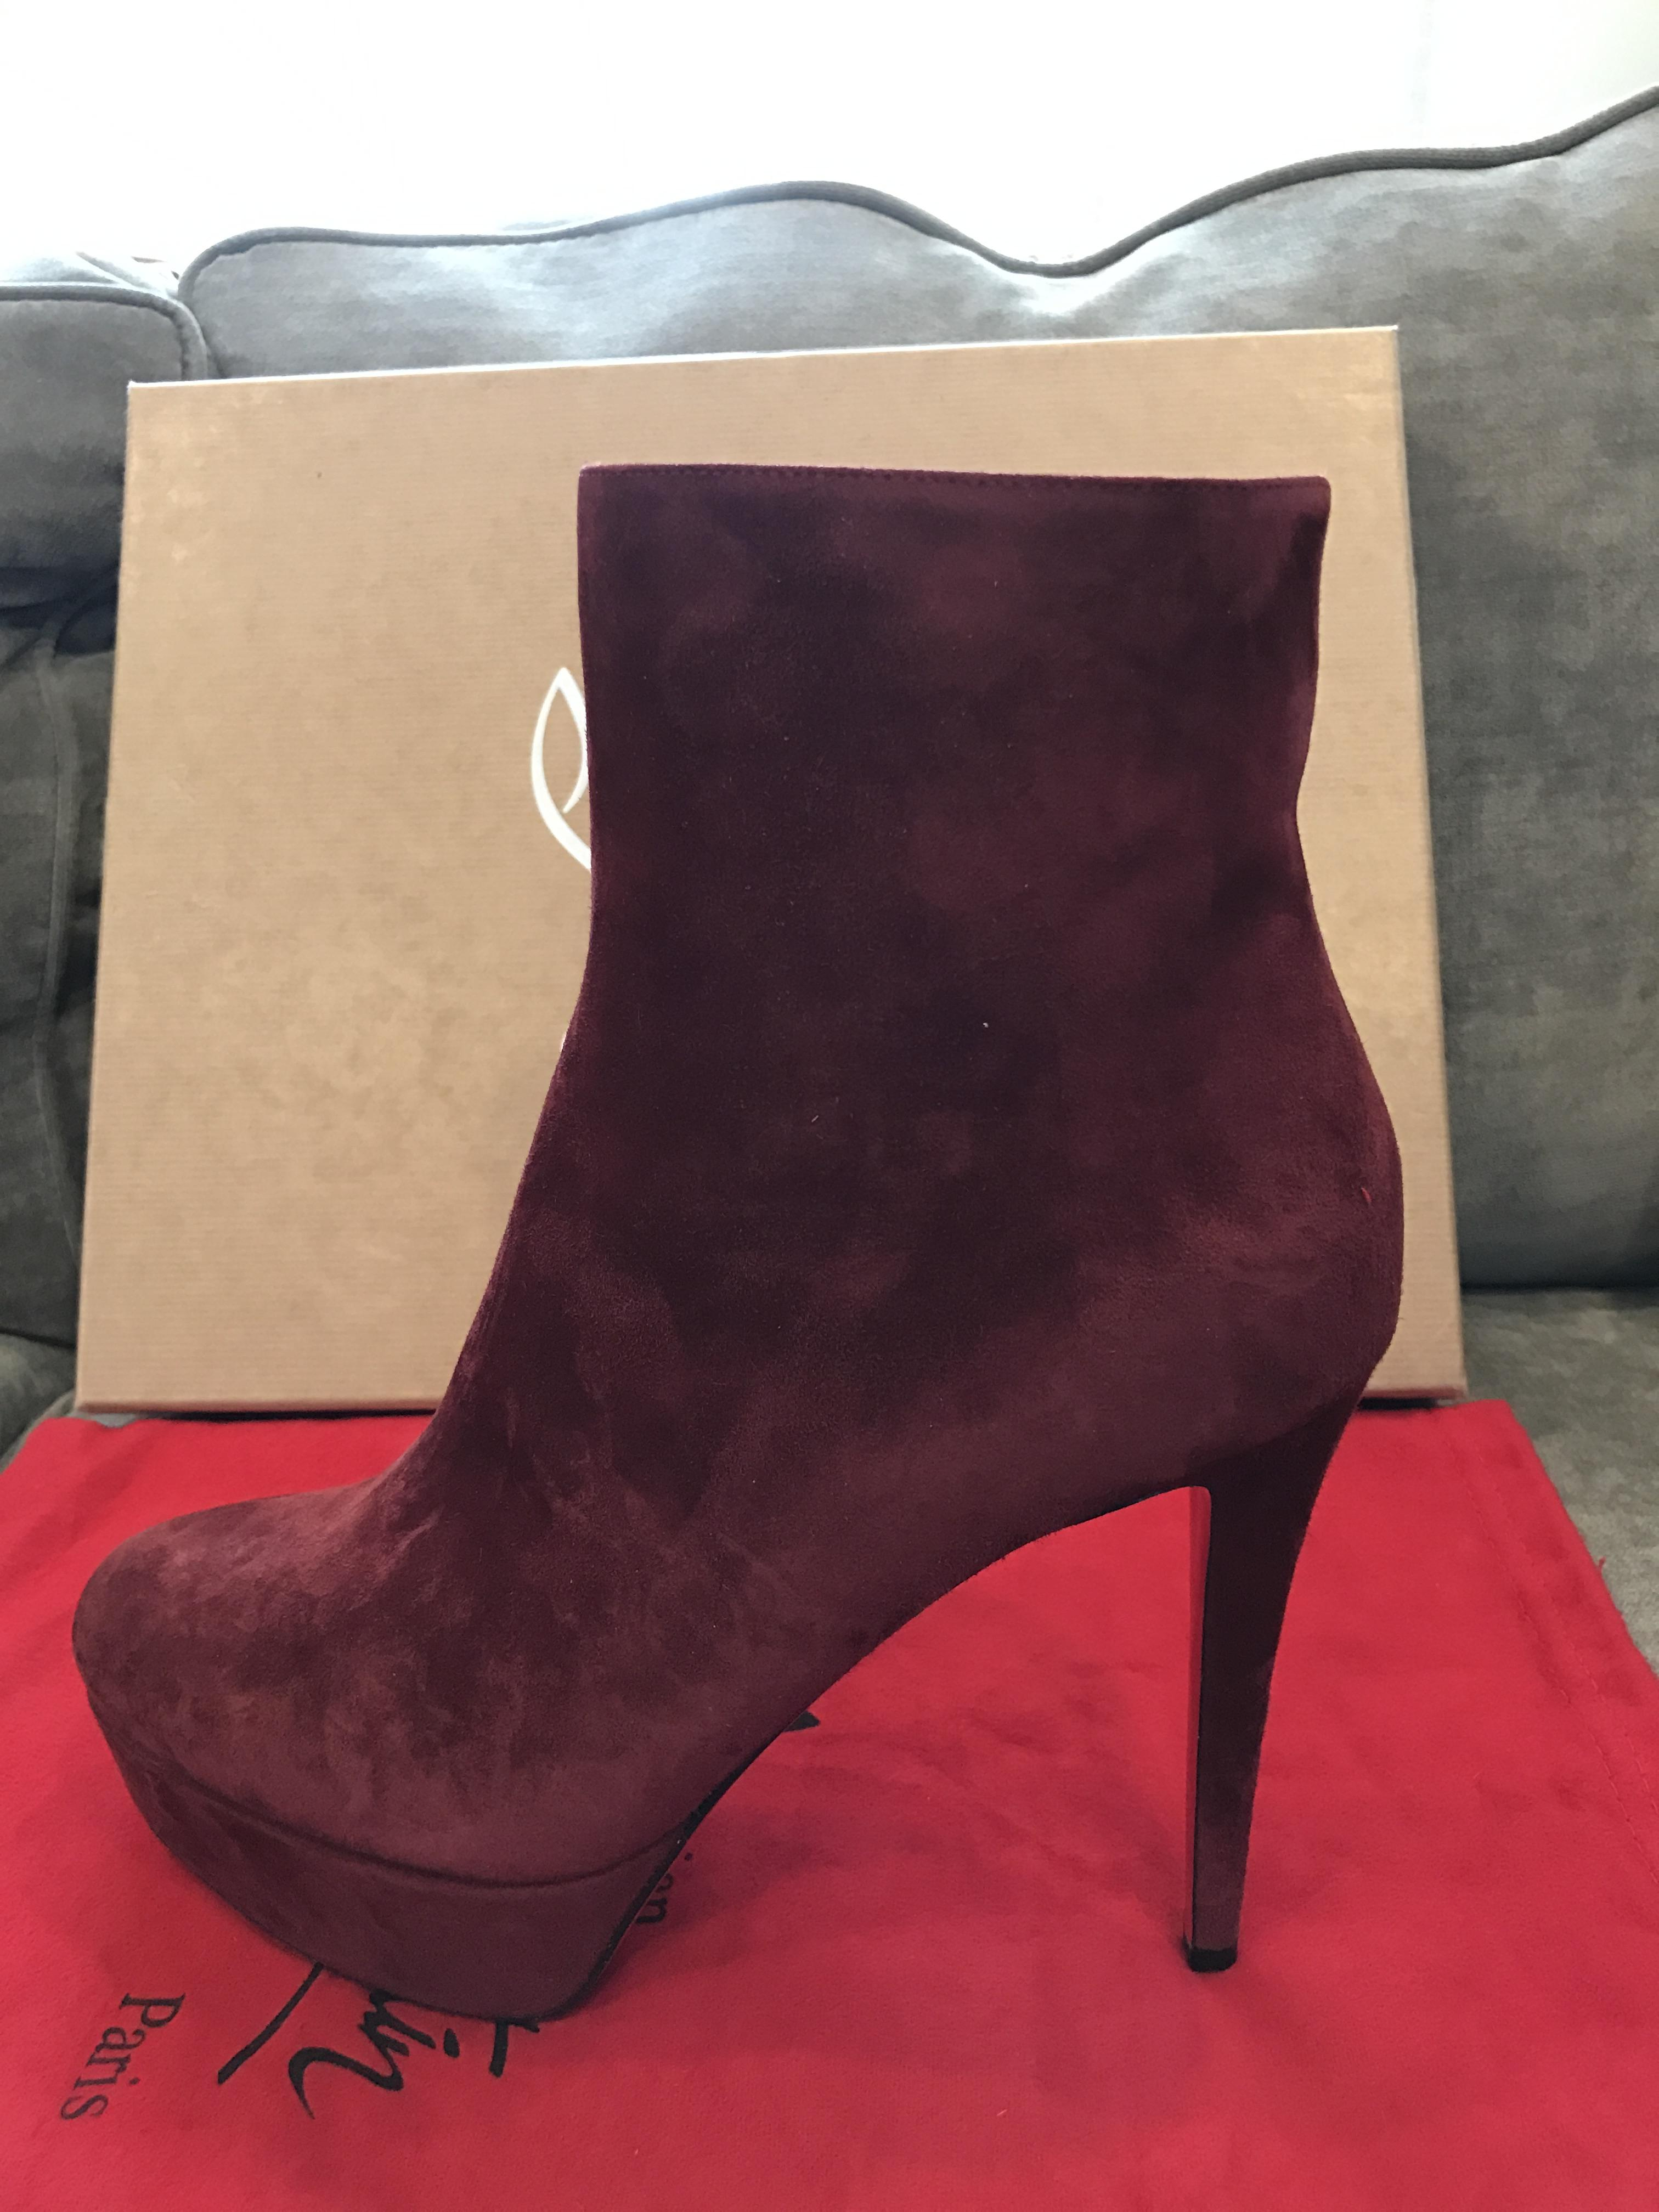 77f3bac69b9 ... Christian Louboutin Bordeaux Bianca Platform Burgundy Burgundy Burgundy  Suede Ankle Heel Boots Booties Size US ...